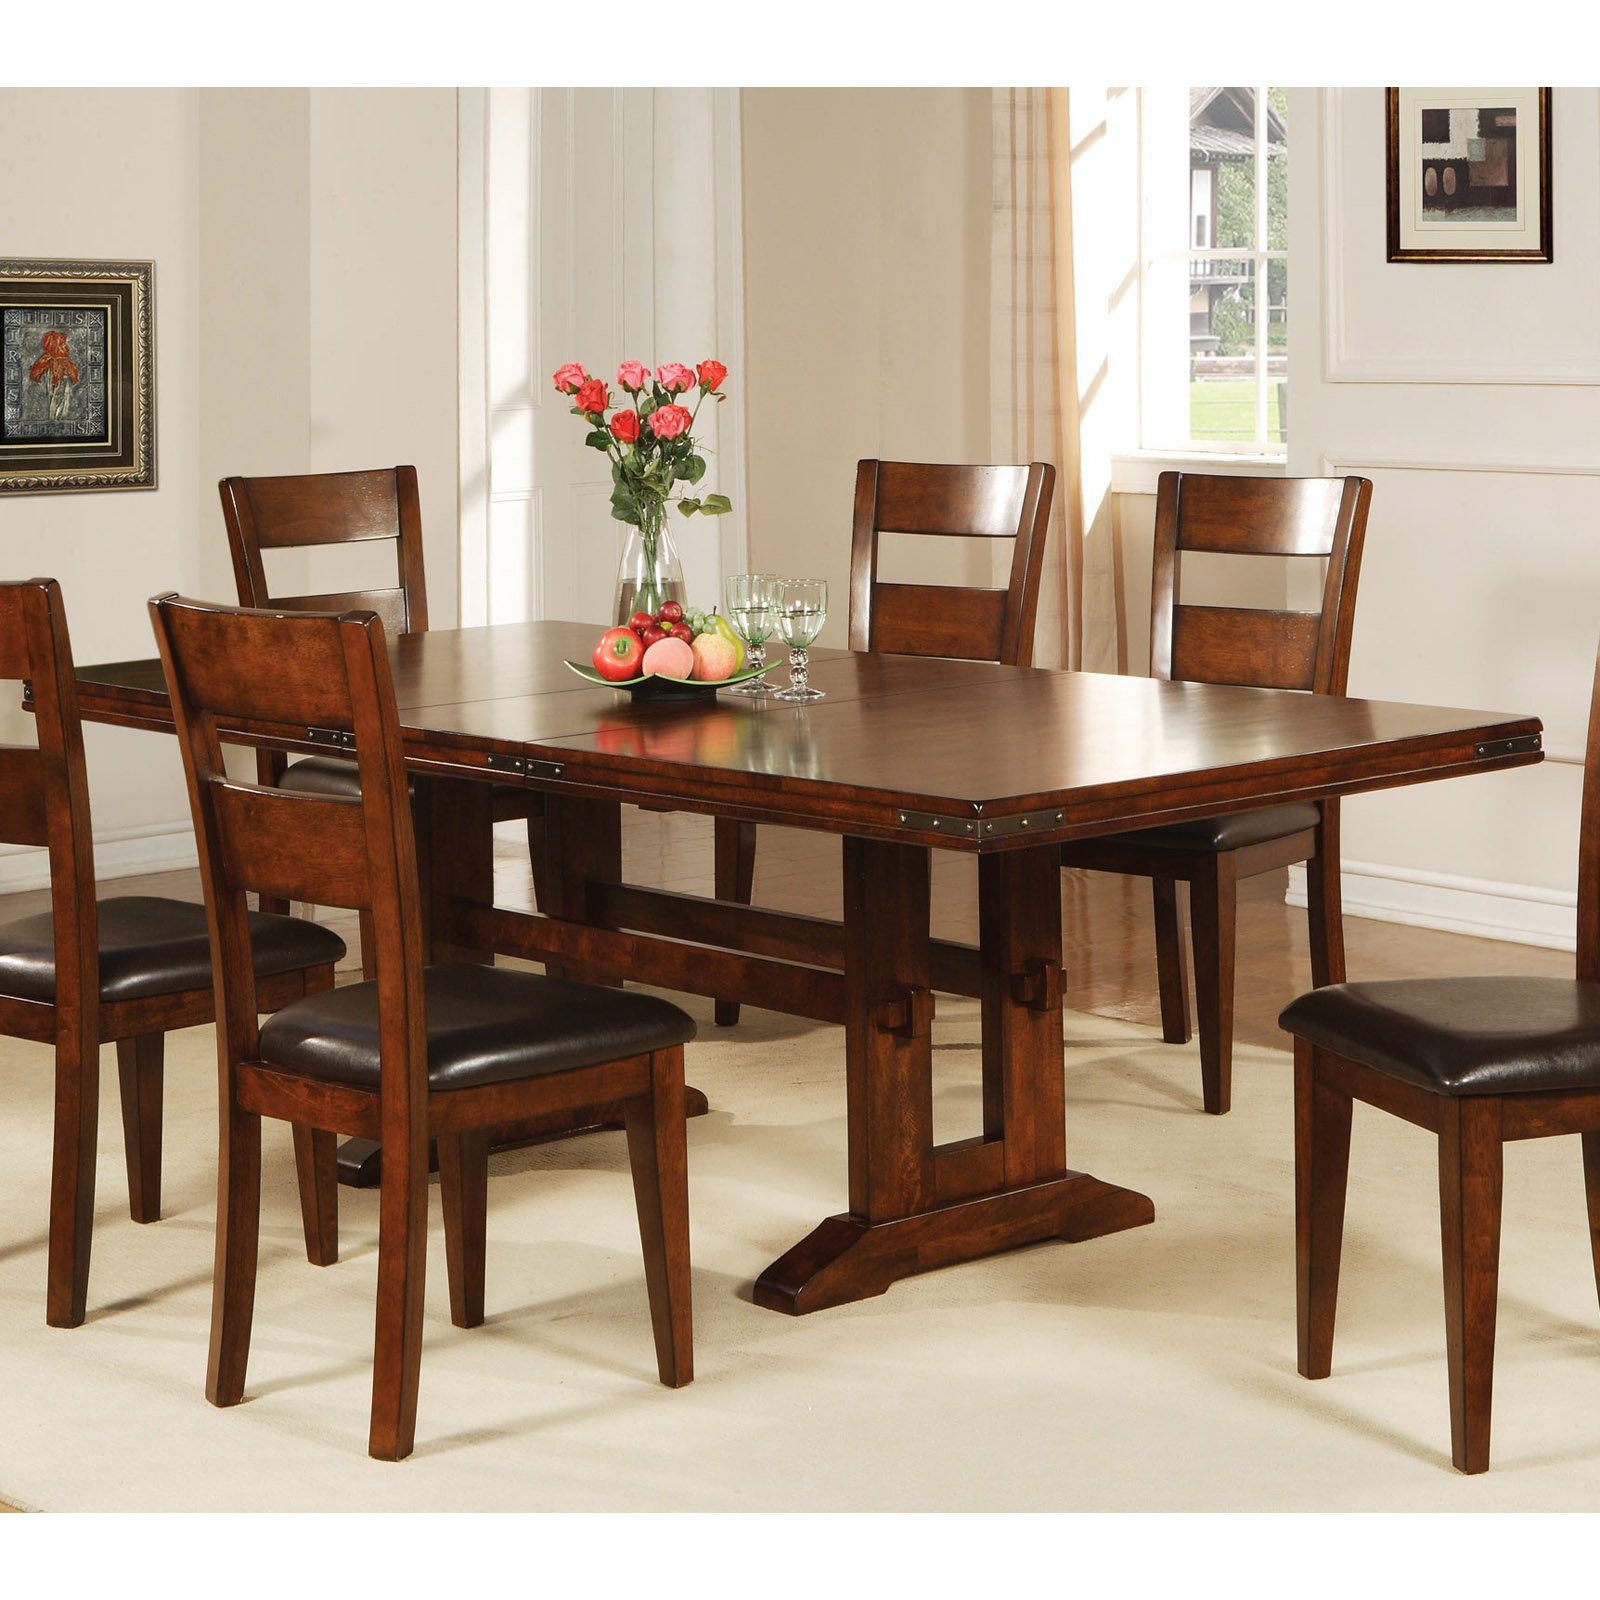 Winners Only Mango 74 in. Trestle Dining Table with 18 in. Butterfly Leaf